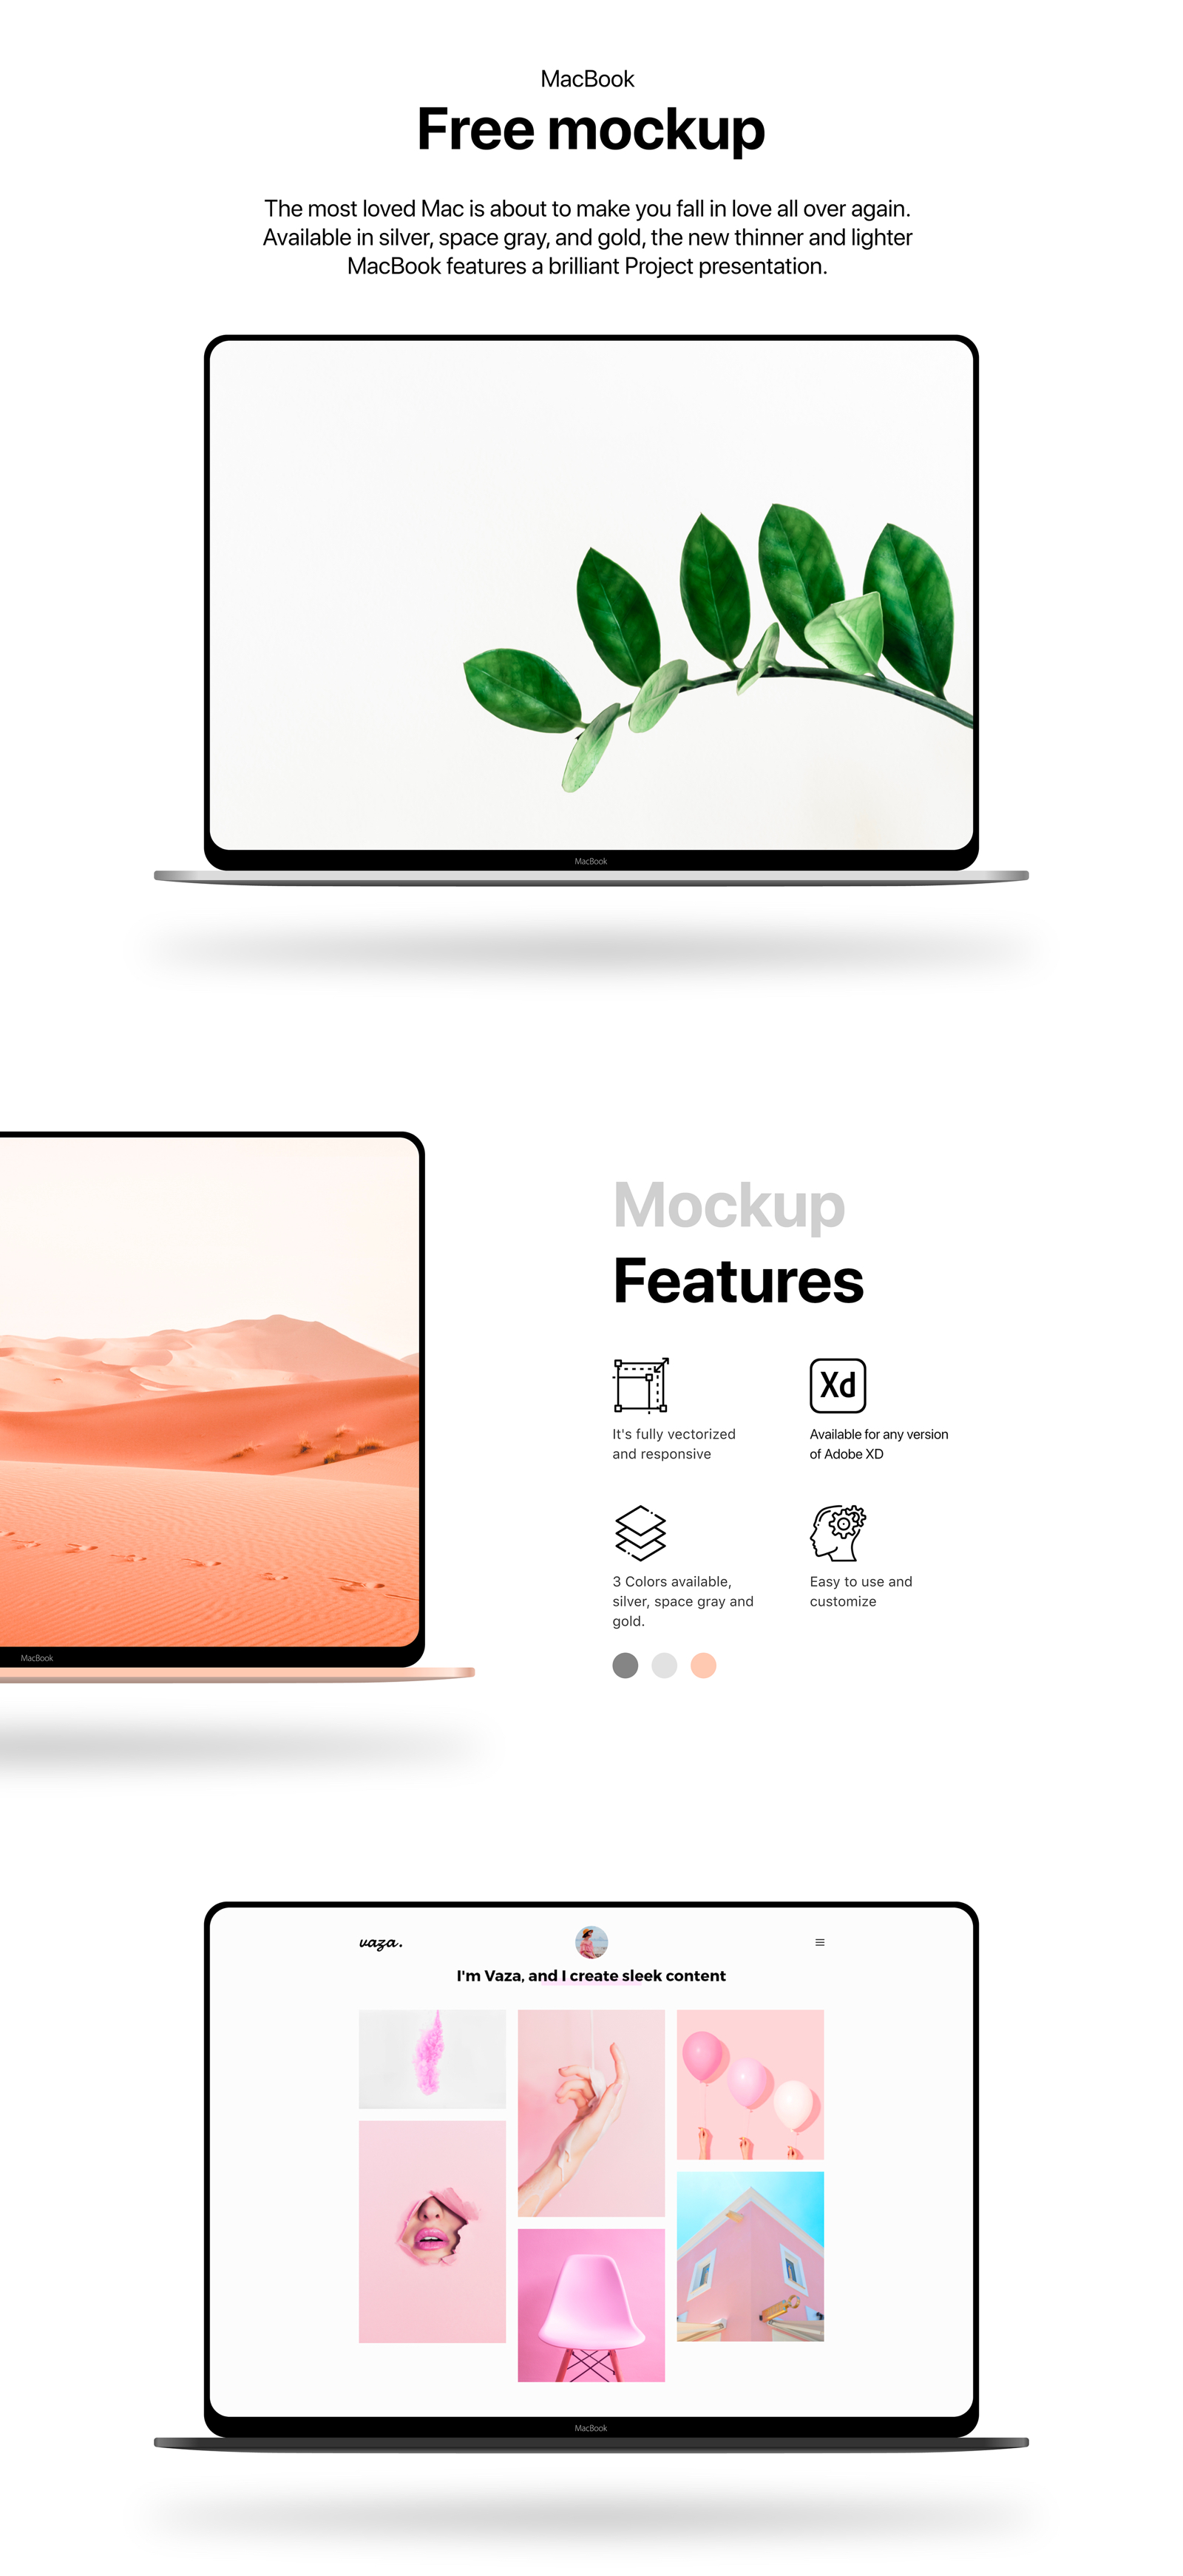 Macbook - Minimal Free Mockup - The most loved Mac is about to make you fall in love all over again. Available in silver, space gray, and gold, the new thinner and lighter MacBook features a brilliant Project presentation.